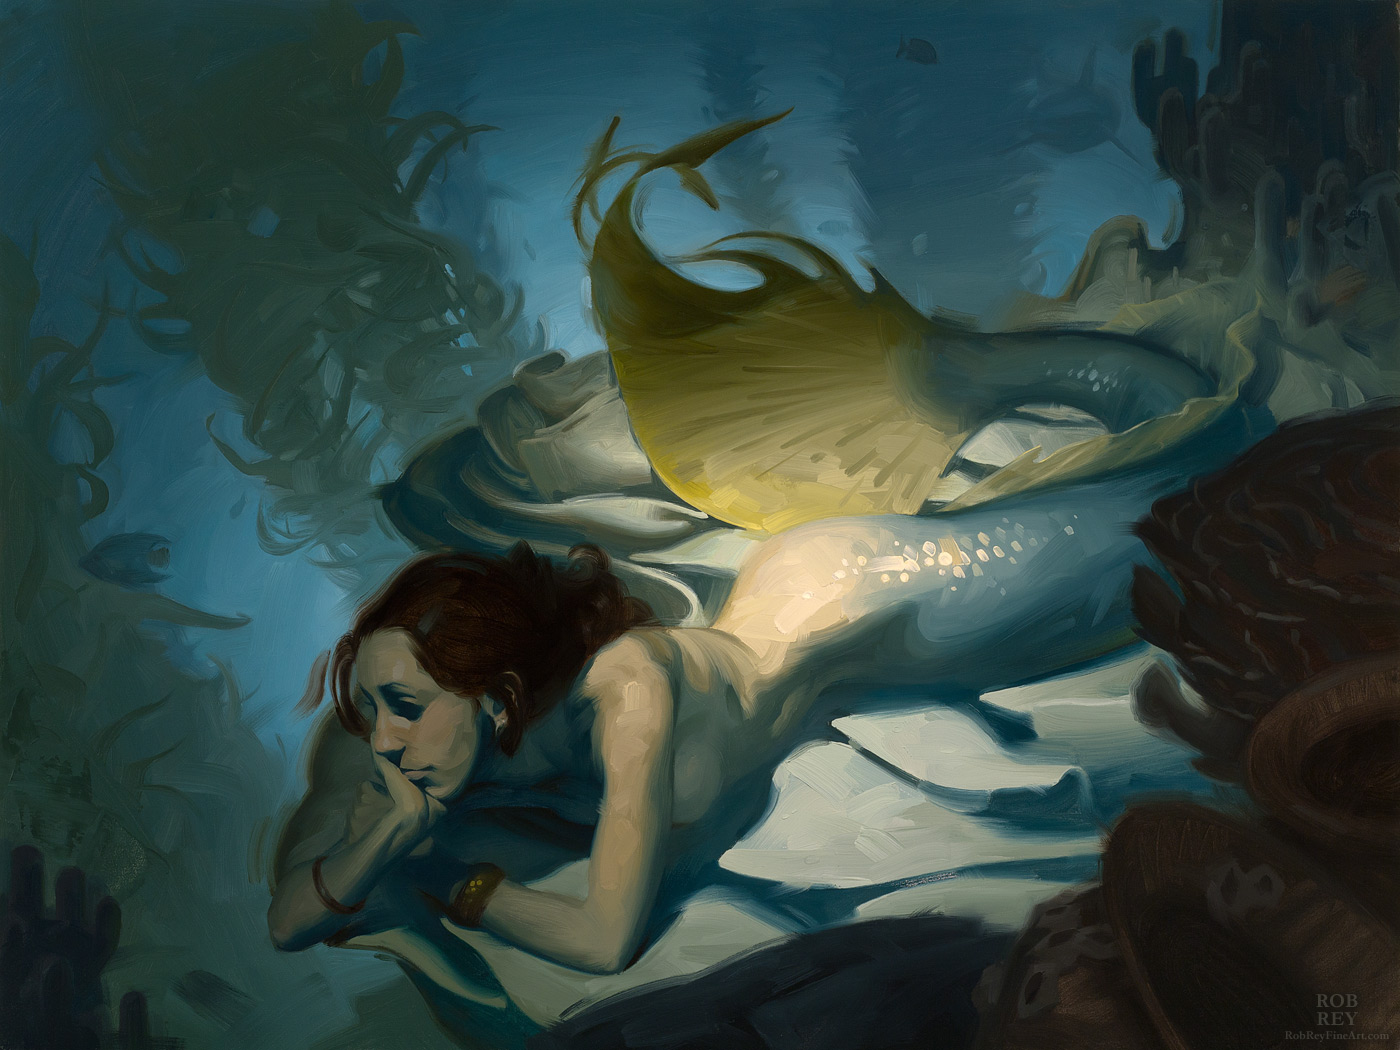 Untitled Mermaid by Rob Rey - robreyfineart.com